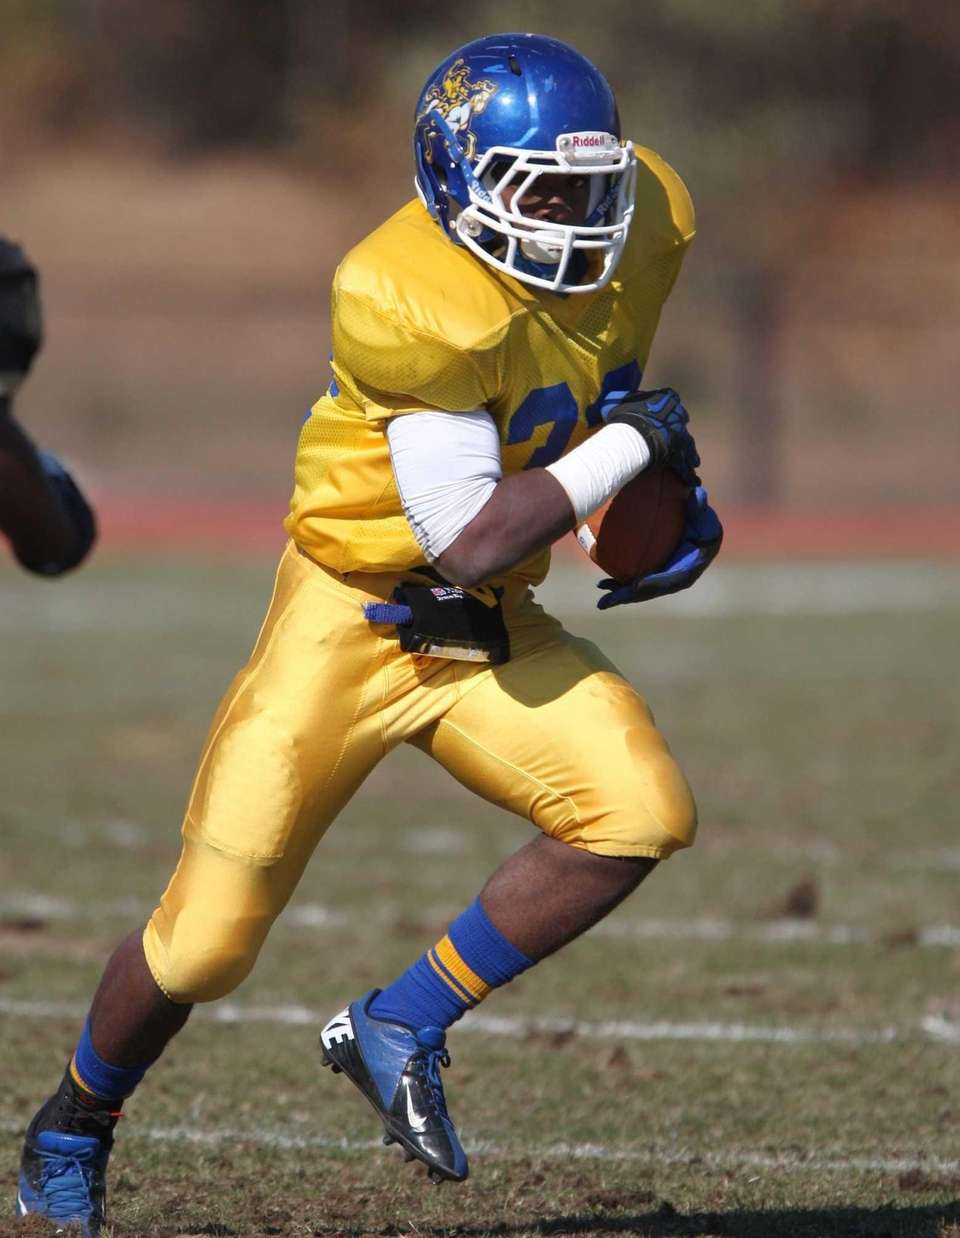 Roosevelt's Johnnie Akins carries the ball against West